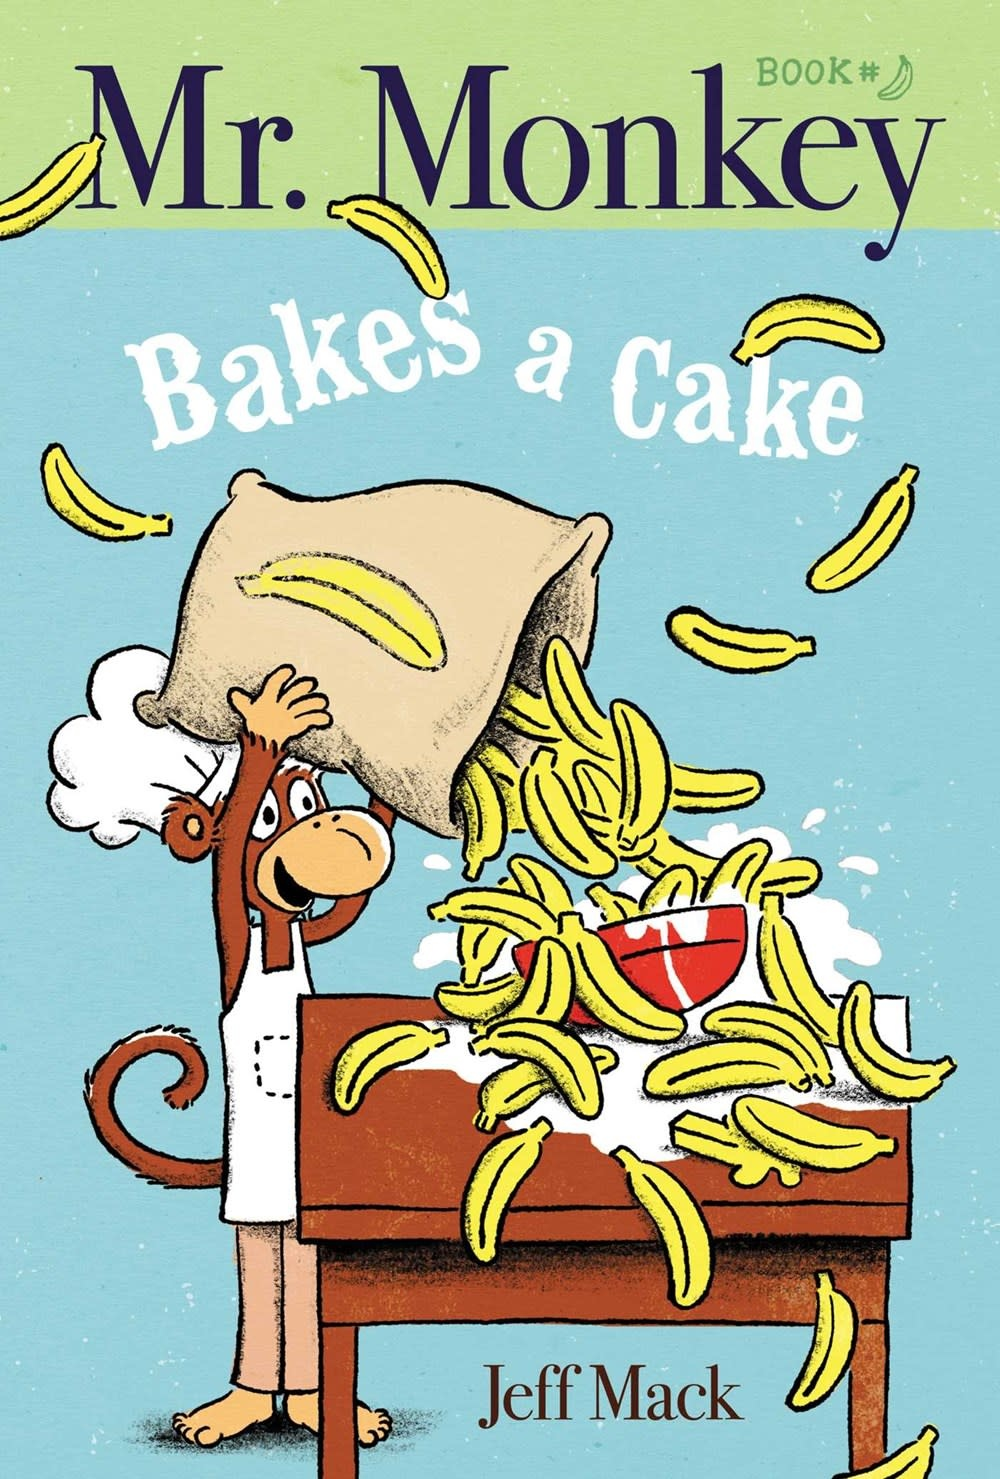 Simon & Schuster Books for Young Readers Mr. Monkey: Bakes a Cake